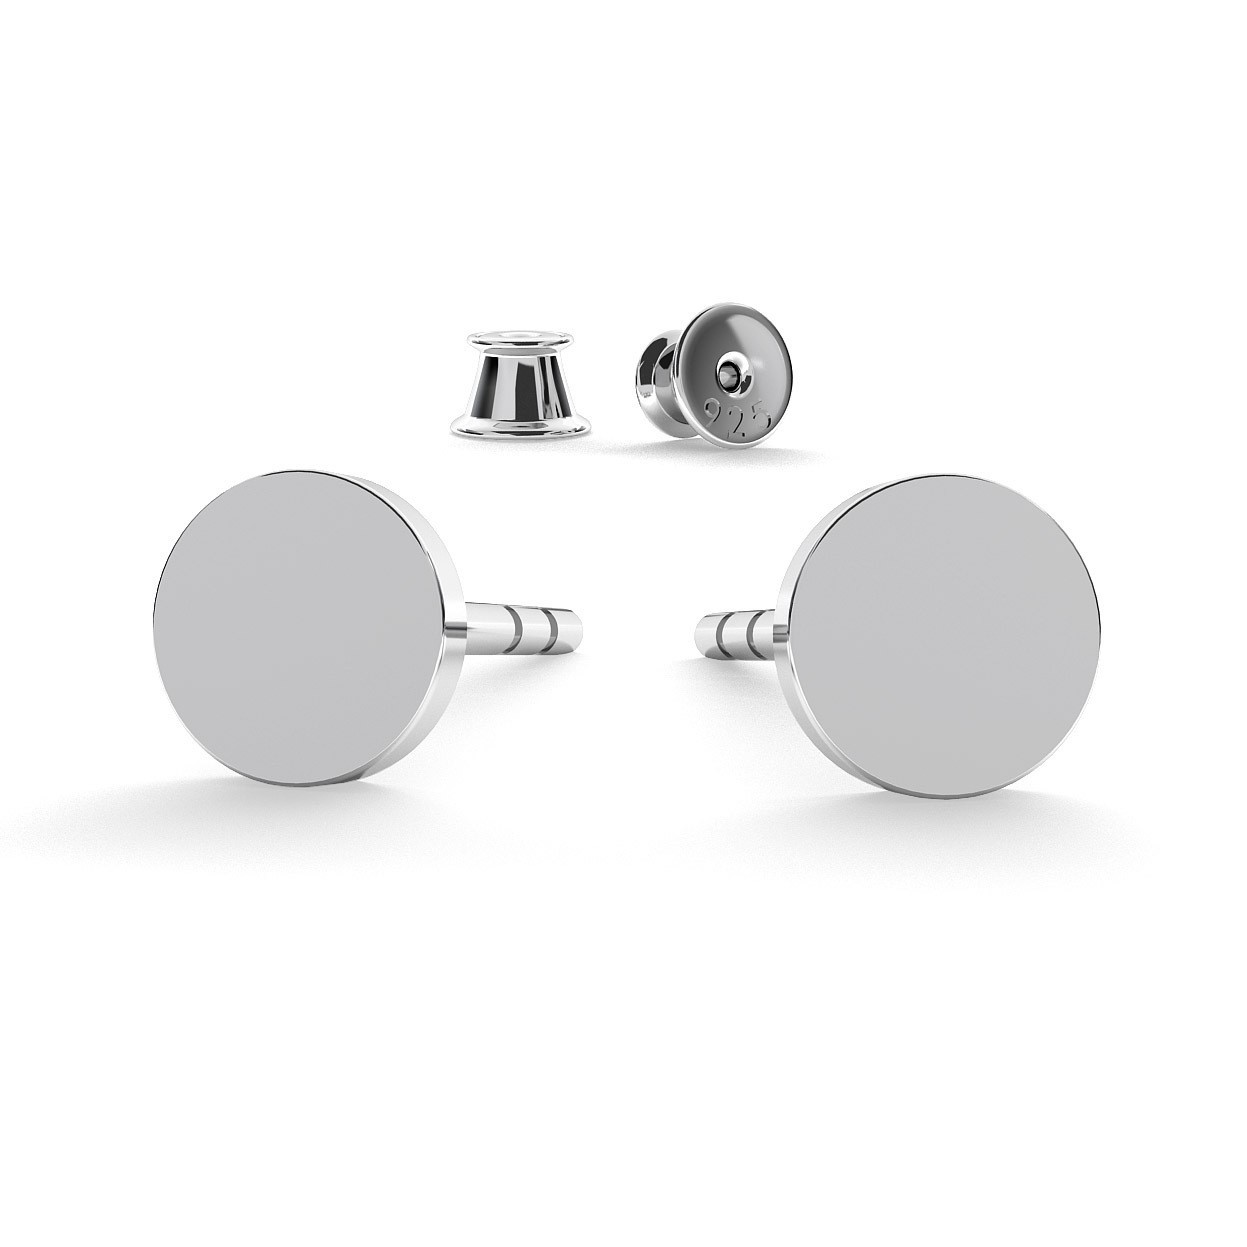 ROUND FLAT 4MM EARRINGS